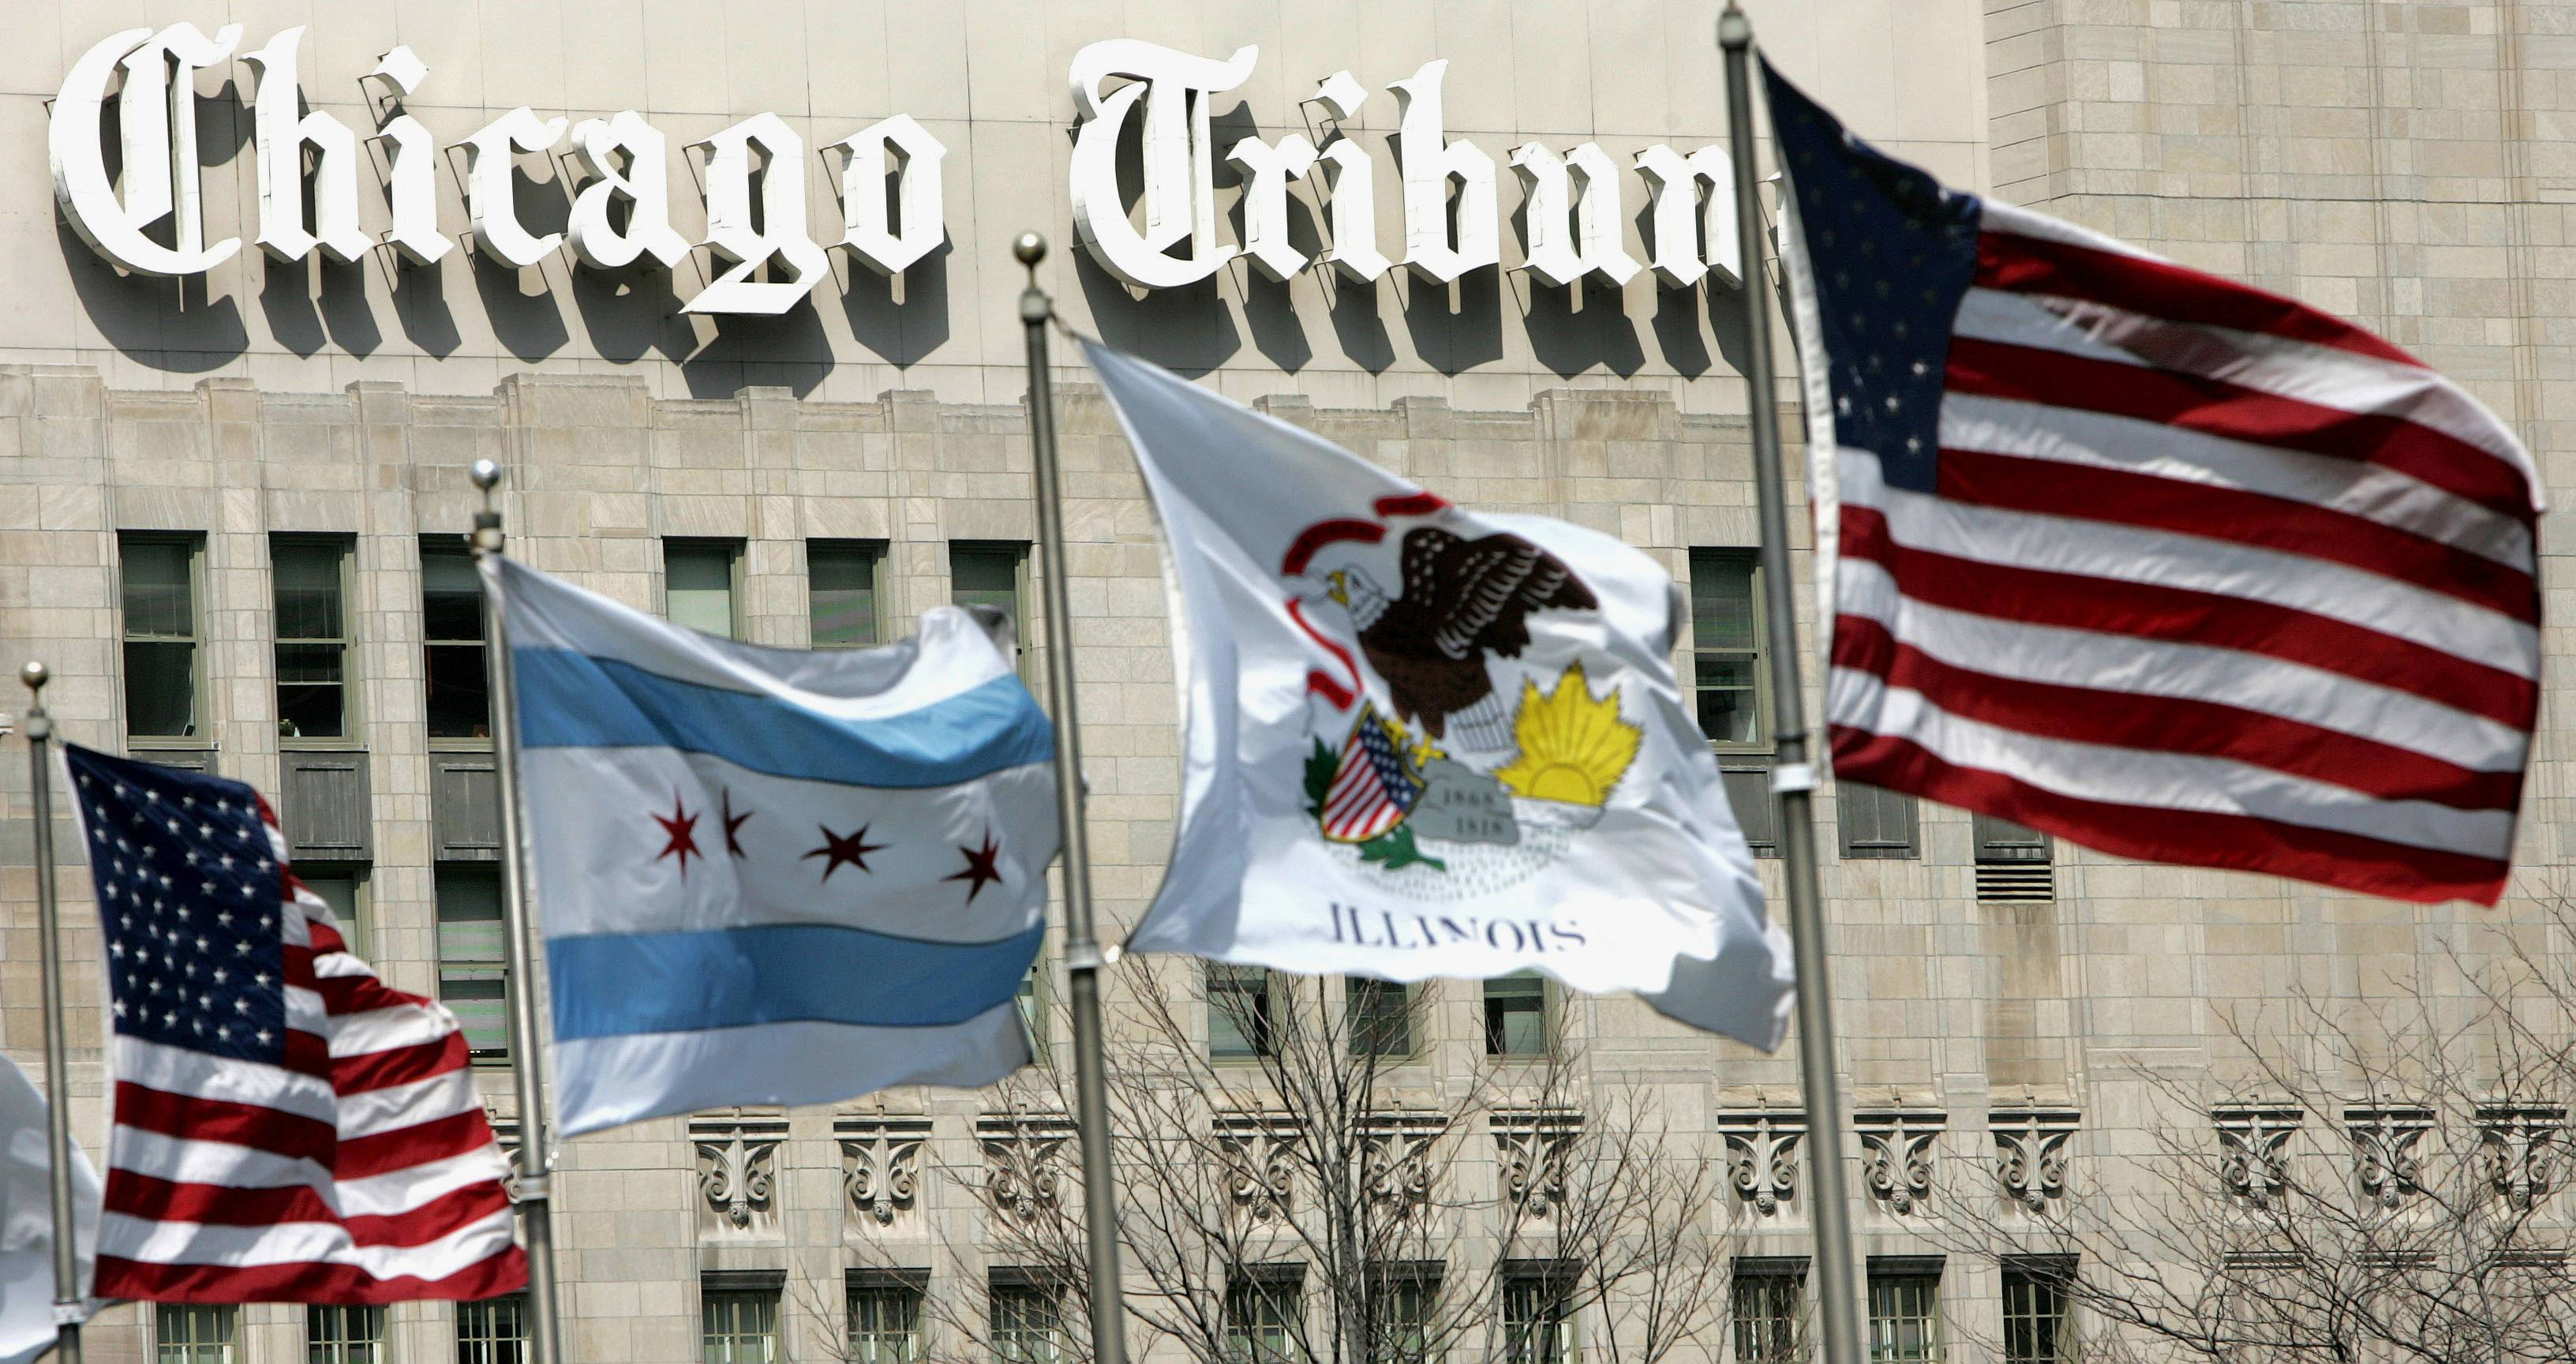 The Chicago Tribune is leaving Tribune Tower in 2018.